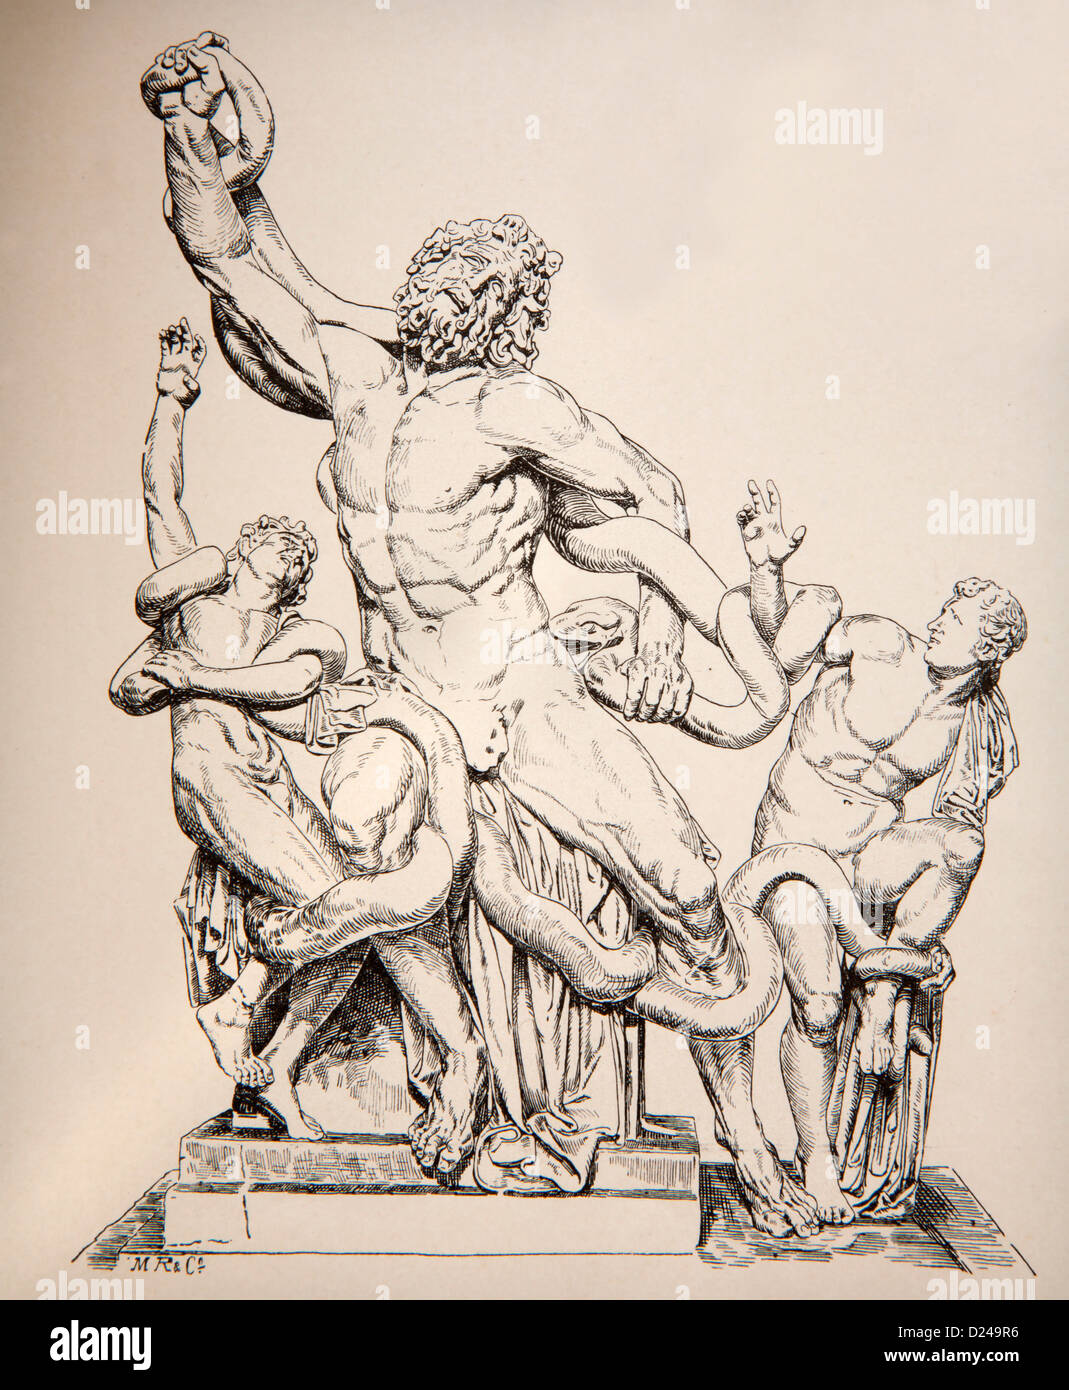 Germany - 1897: Lithography of statue Group of Laocoon originaly form Vatican museums. - Stock Image